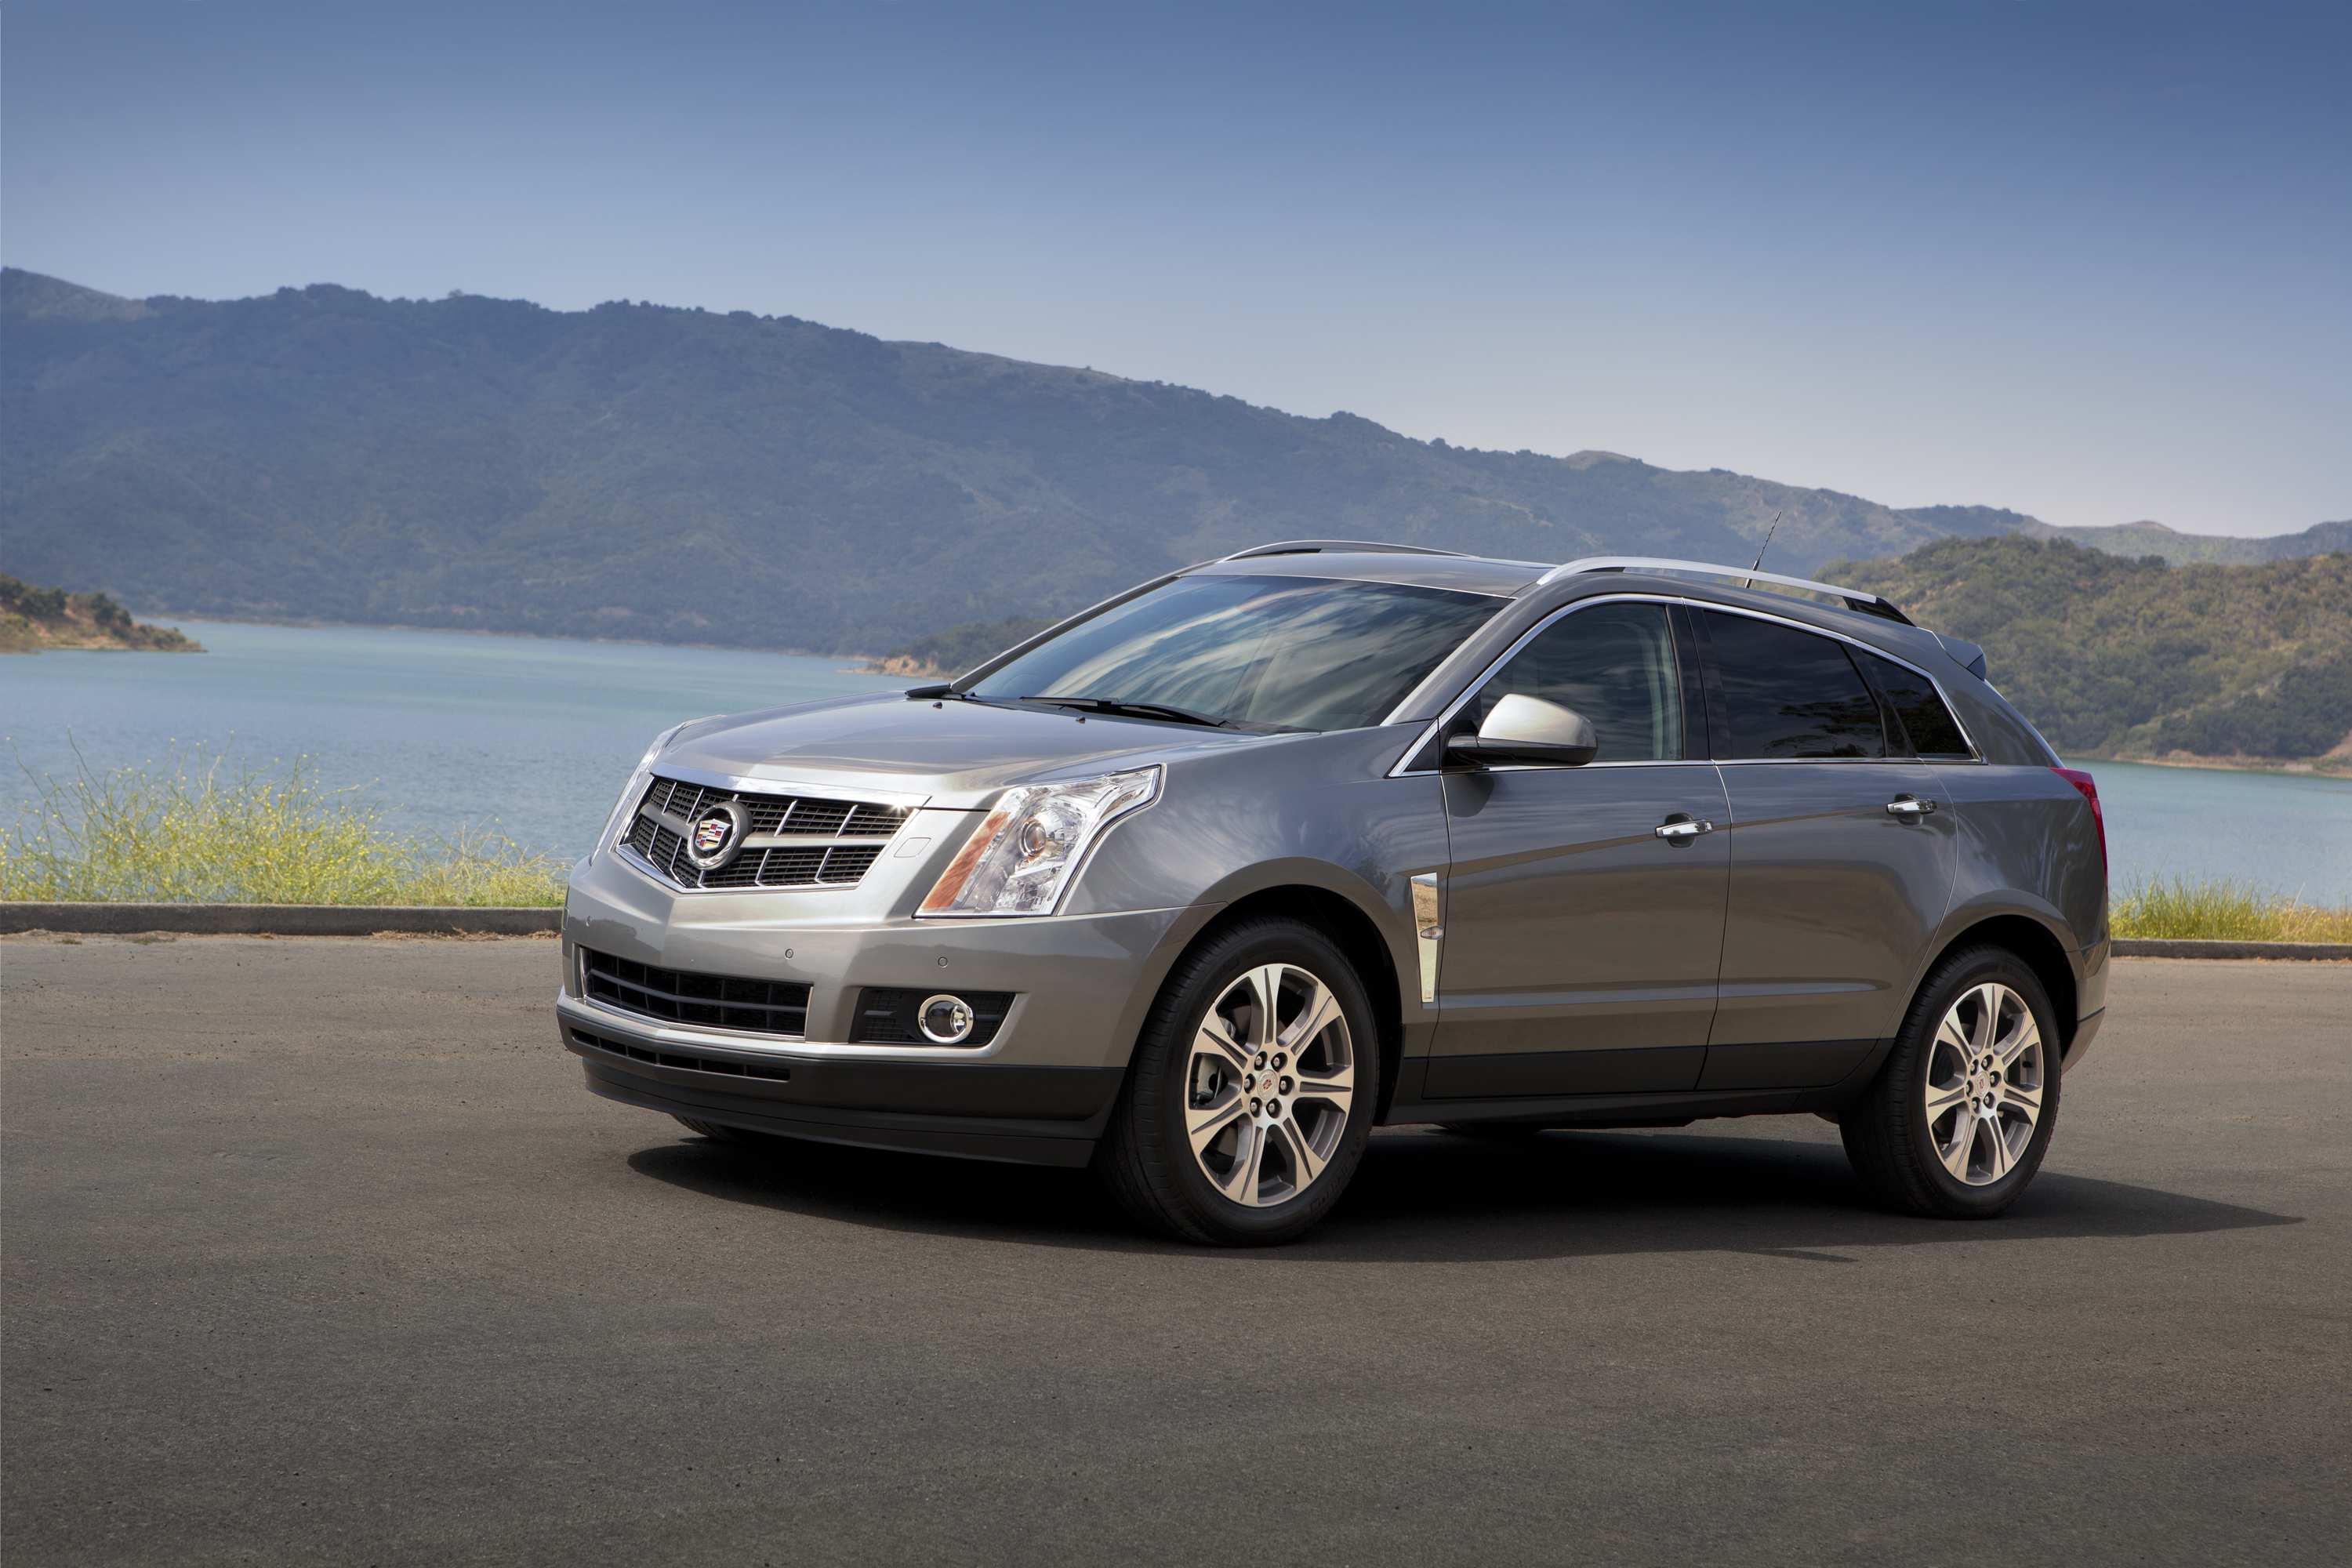 Cadillac SRX Source: (C) GM Corp.